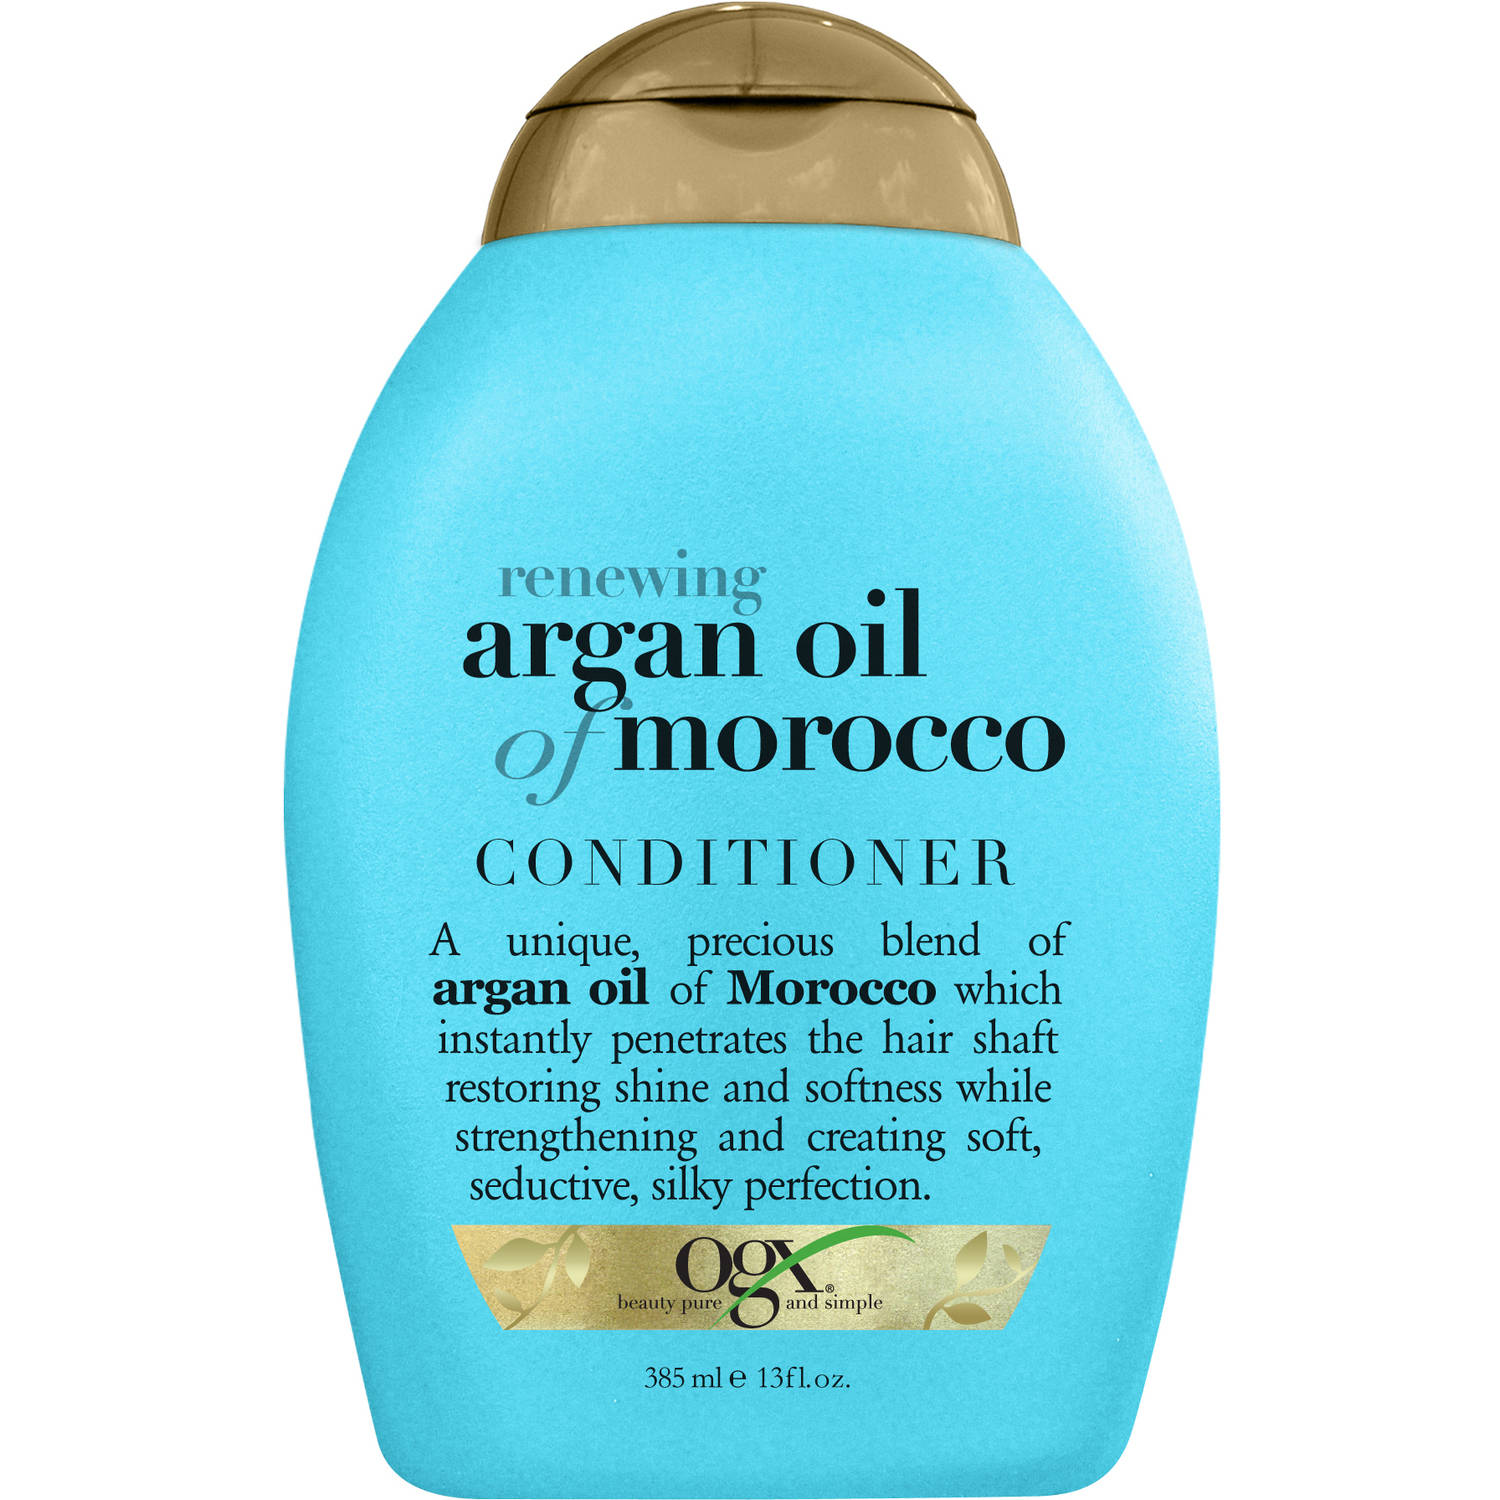 OGX Renewing Moroccan Argan Oil Conditioner, 13 oz